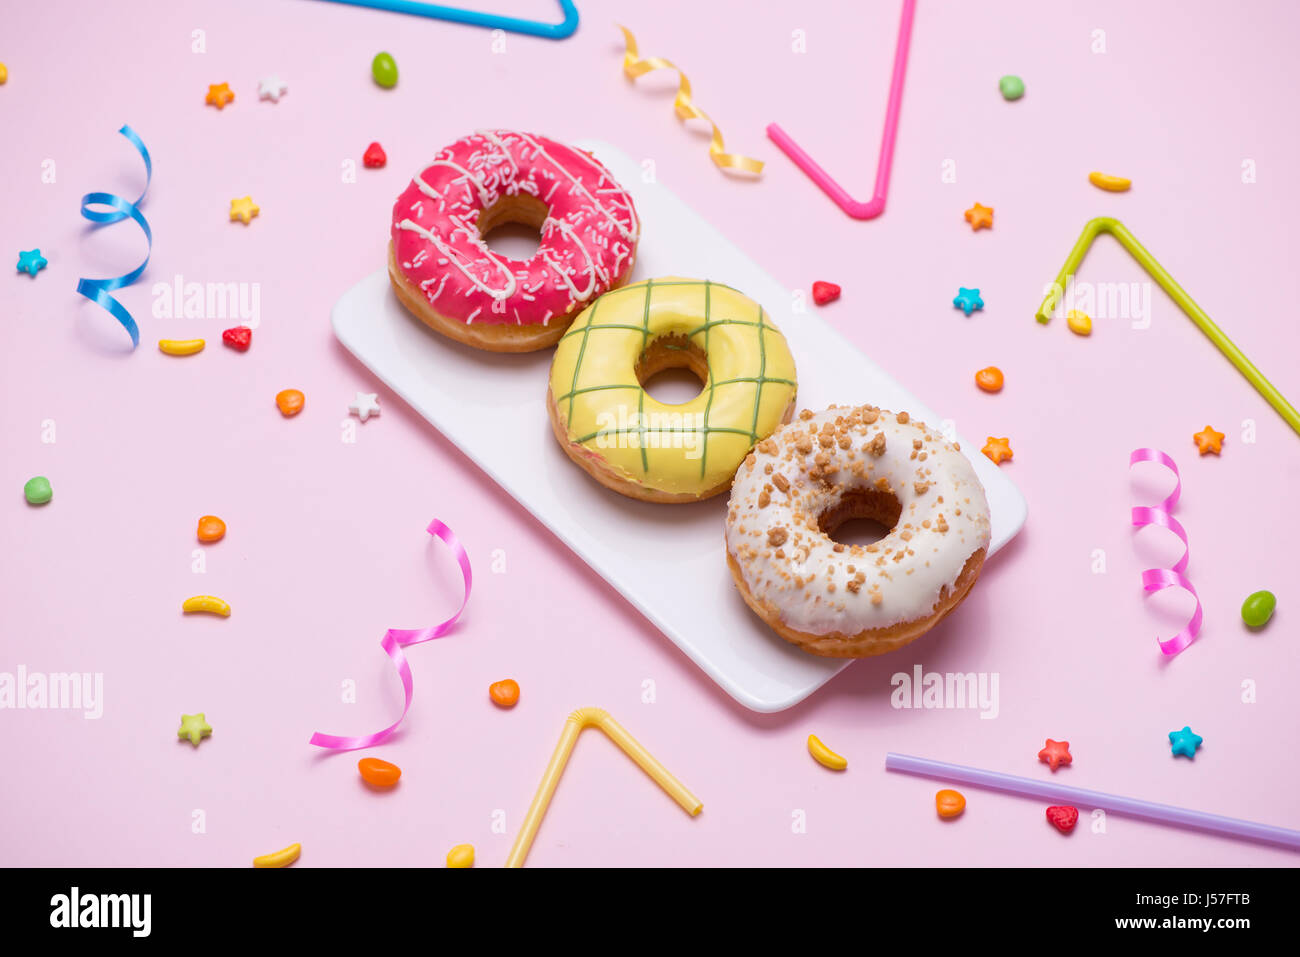 Party. Different colourful sugary round glazed donuts and bottles of drinks on pink background. - Stock Image